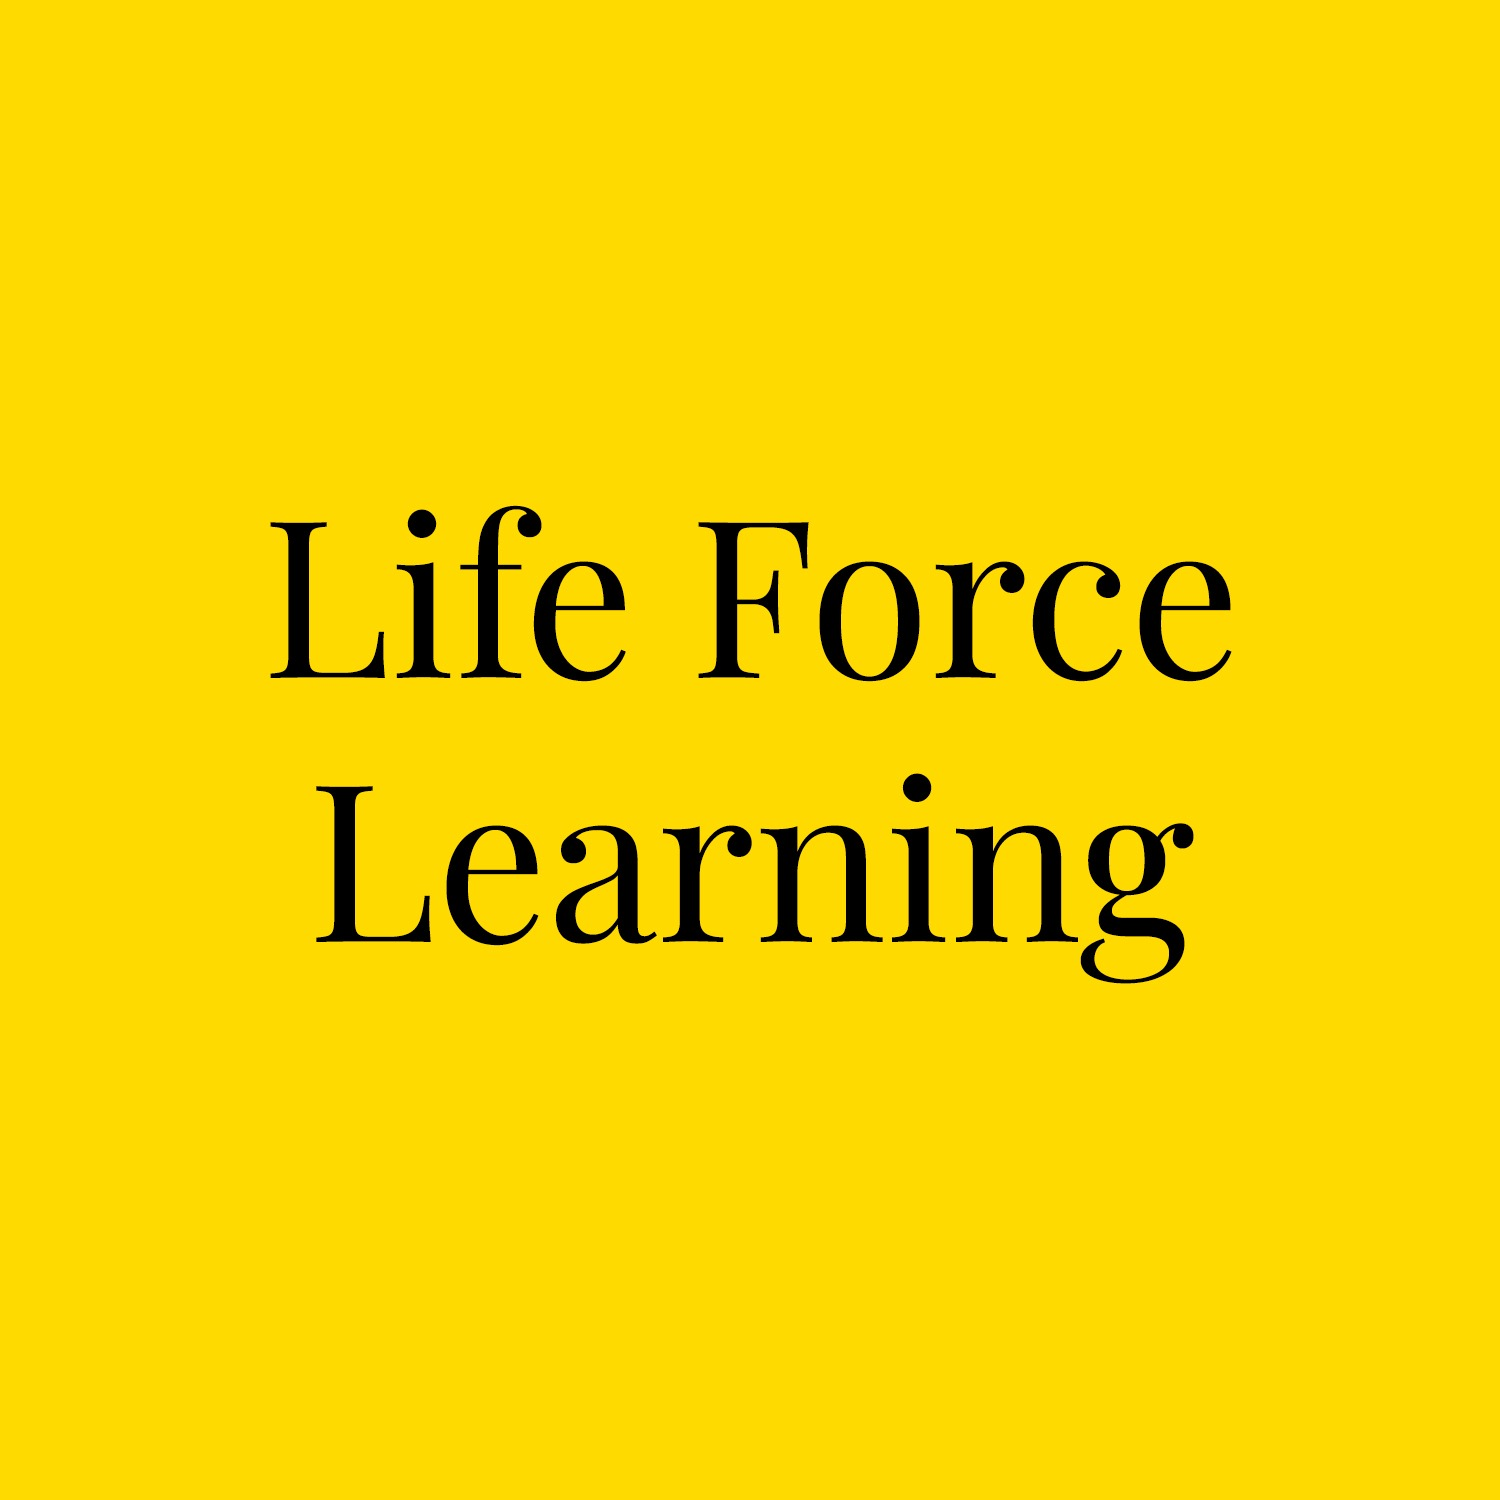 Life Force Learning